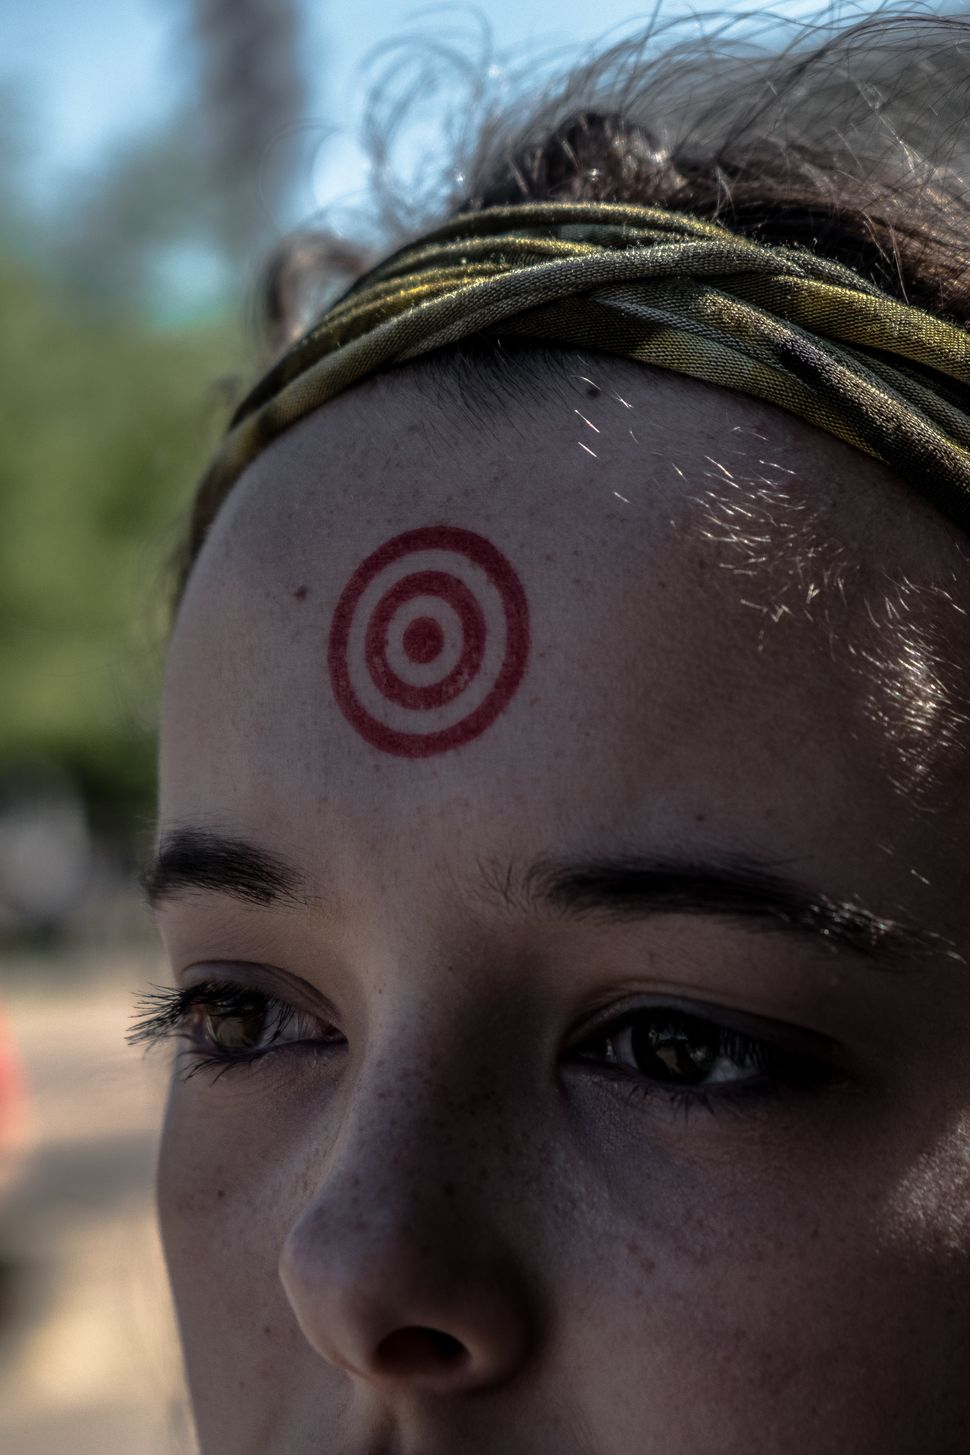 Julia Heilrayne, a student at Austin High School, stands with a target painted on her head ata gun control rallyo